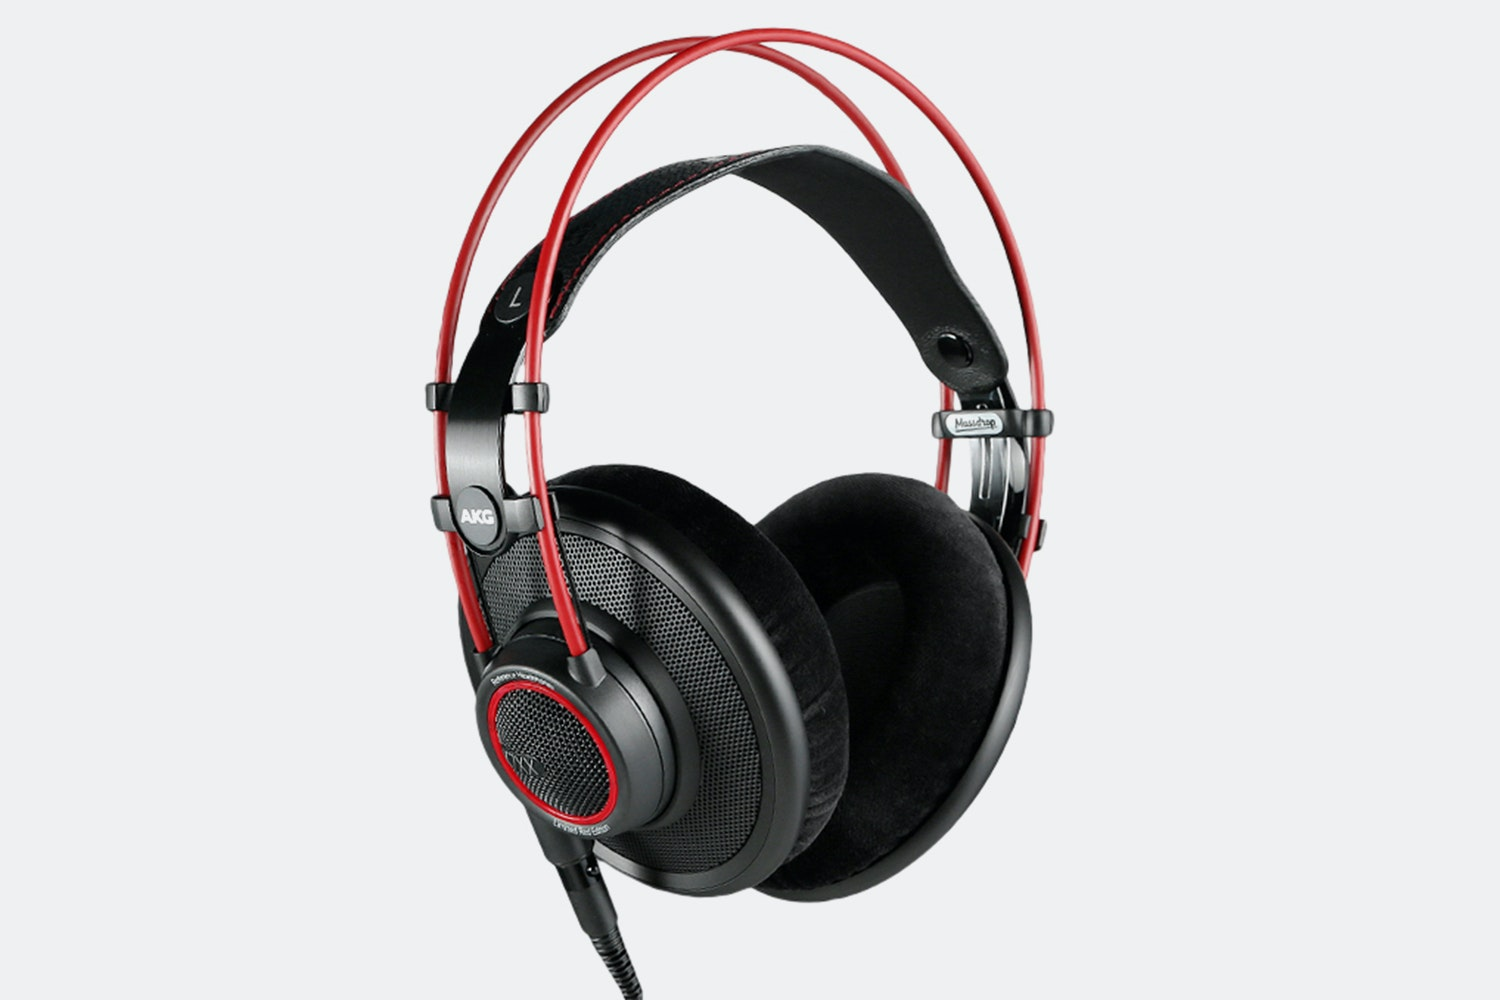 Massdrop x AKG K7XX headphones in red